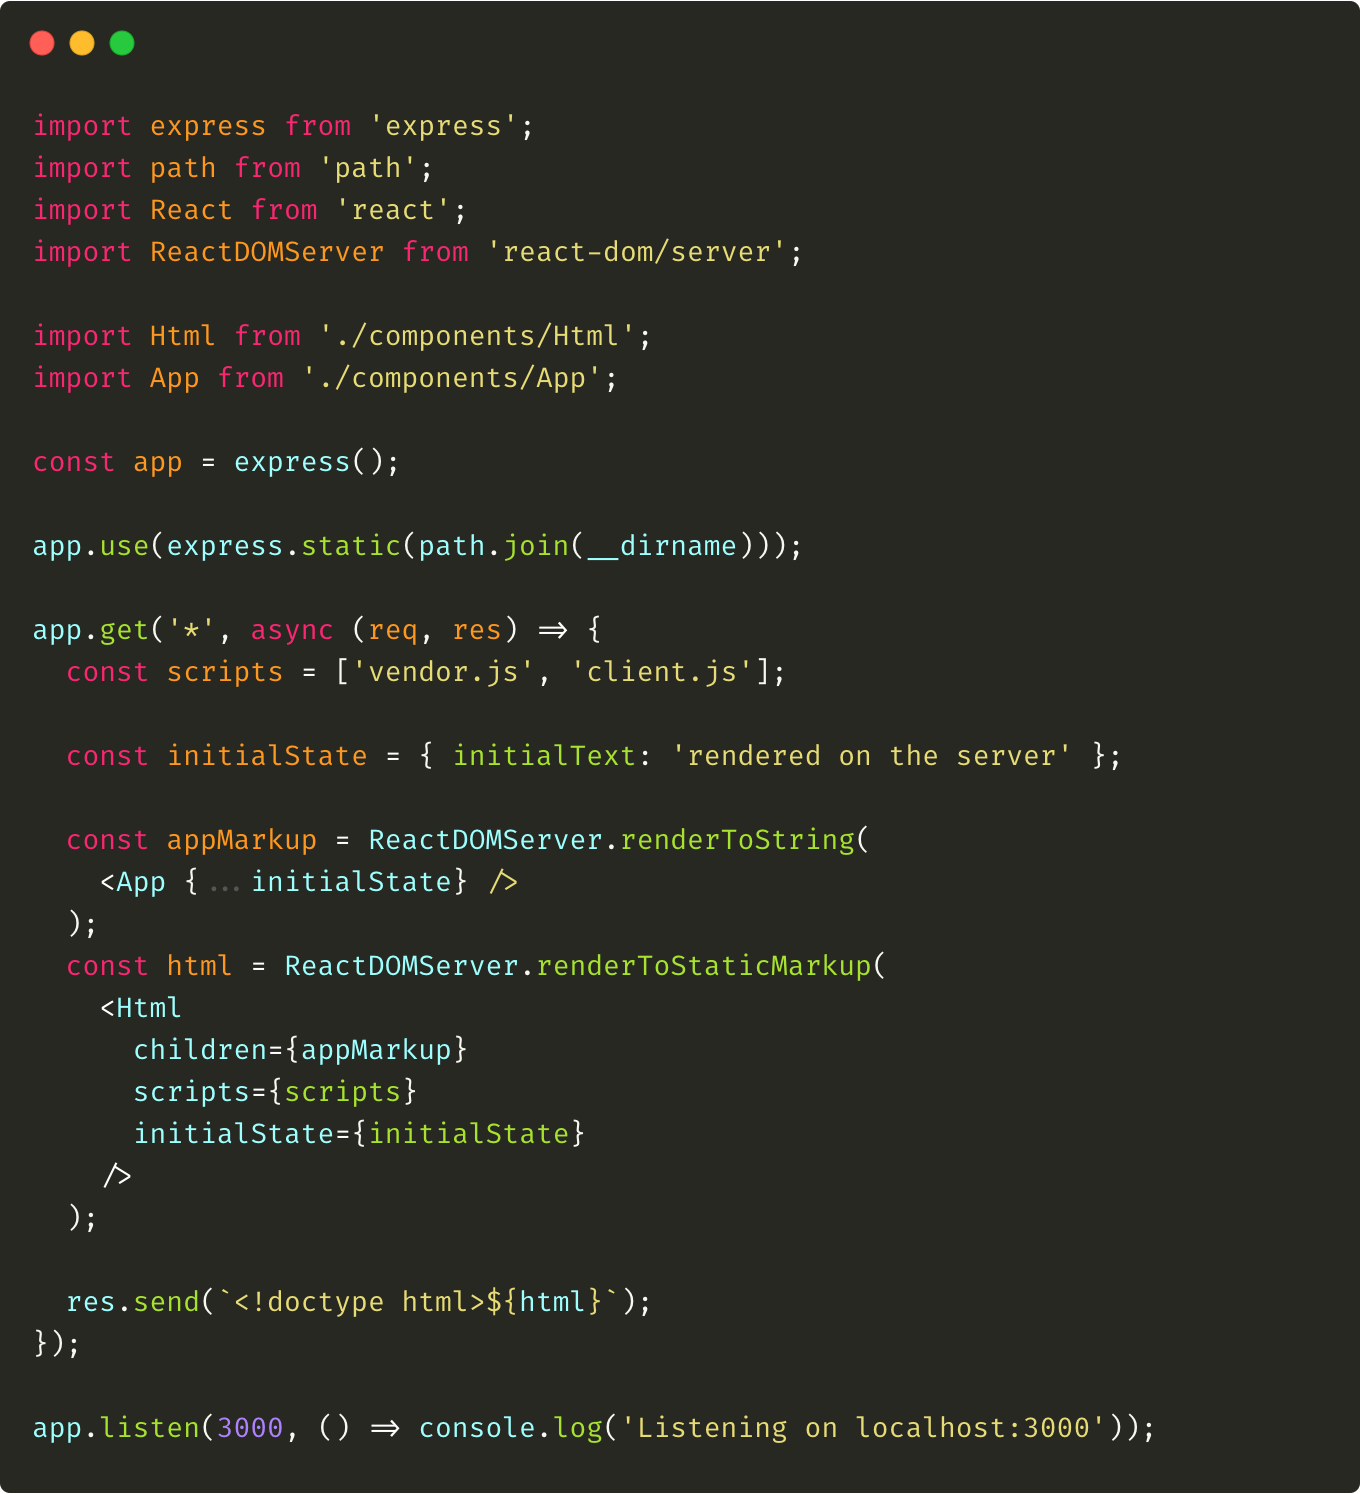 Modified server.js file that creates shared initial state, uses it and pass it to the Html component while rendering.